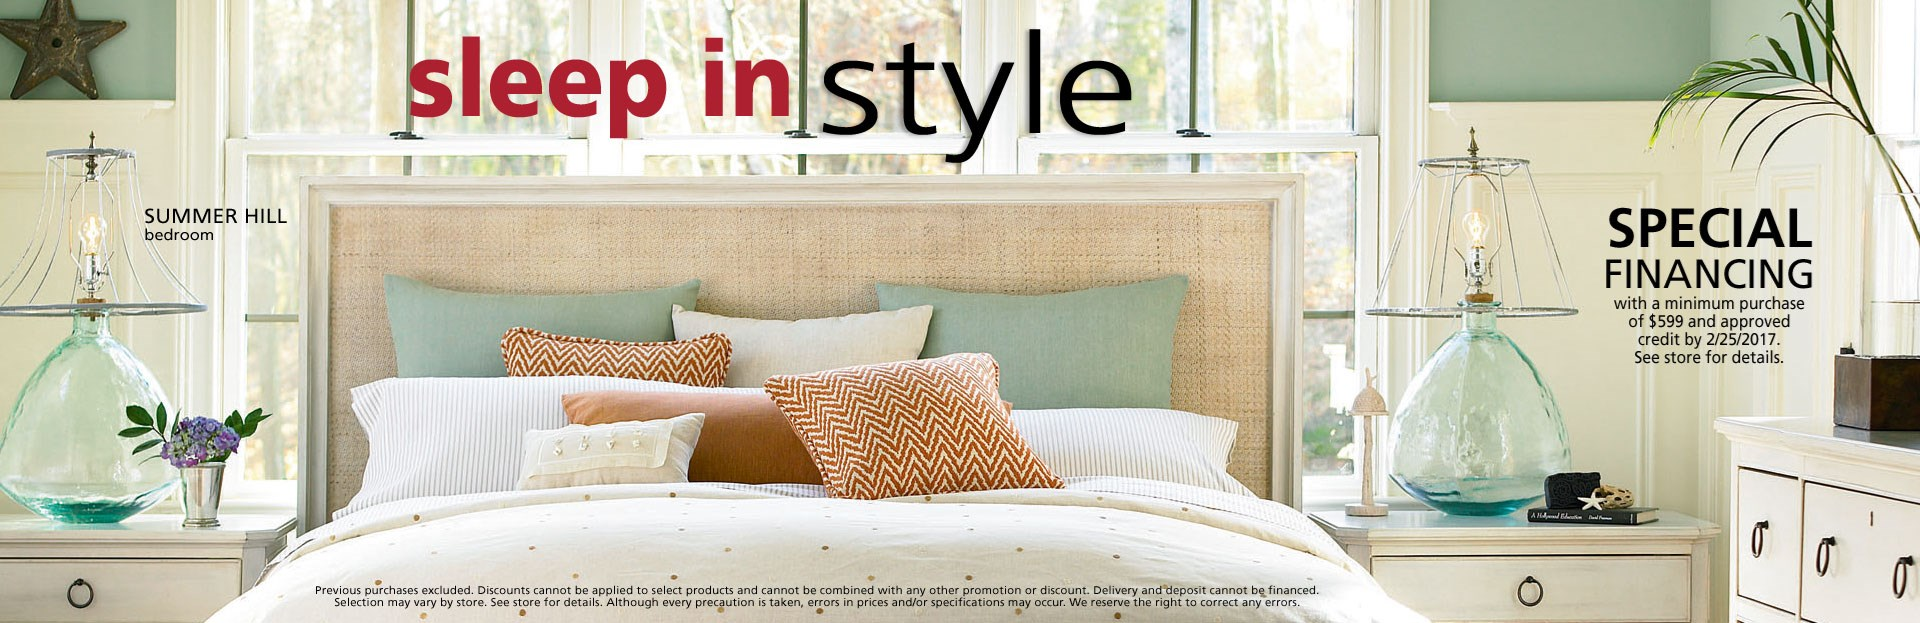 Sleep in style event; special financing available. See store for details.